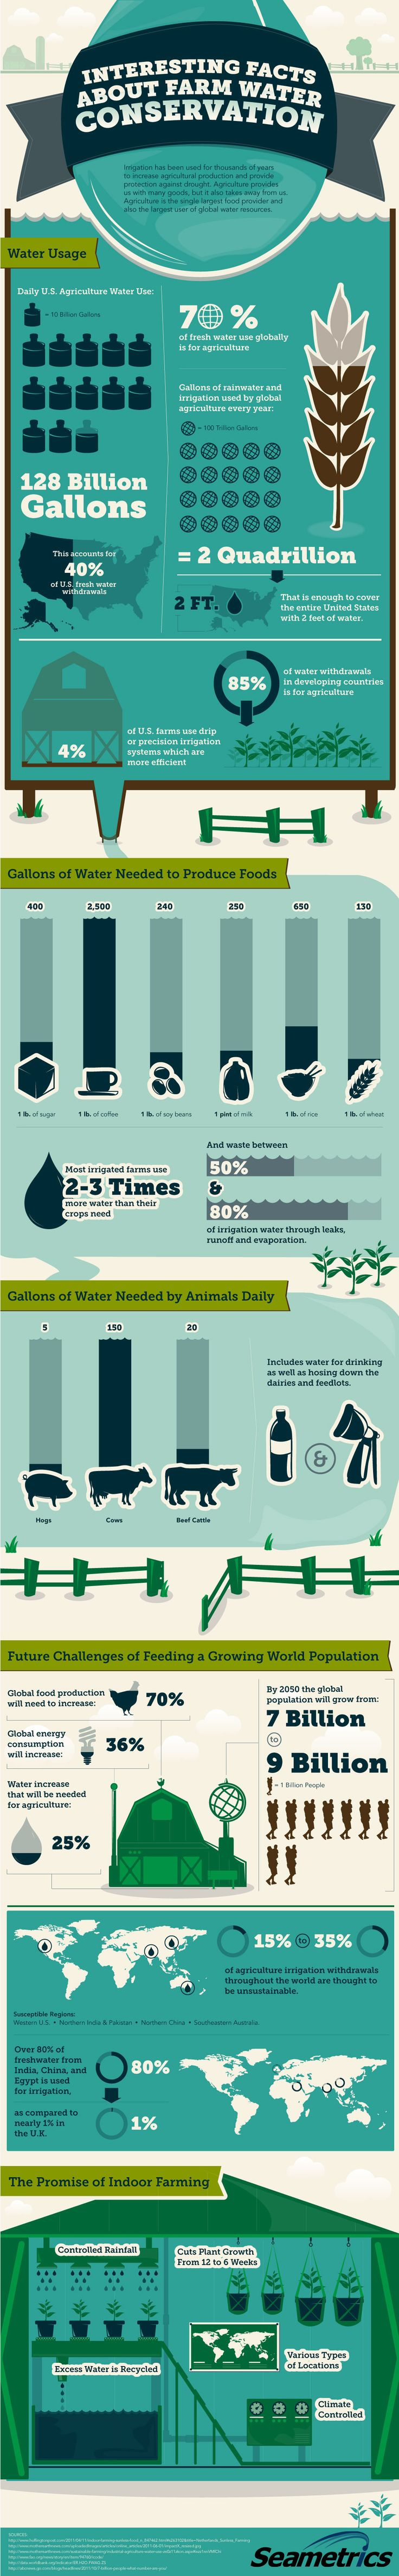 #infographic : facts about farming and water conservationWater Conservative, Water Infographic, Farms Water, General Infographic, Conservative Water, Agriculture, Facts About Mothers Nature, Interesting Facts, Cute Illustration